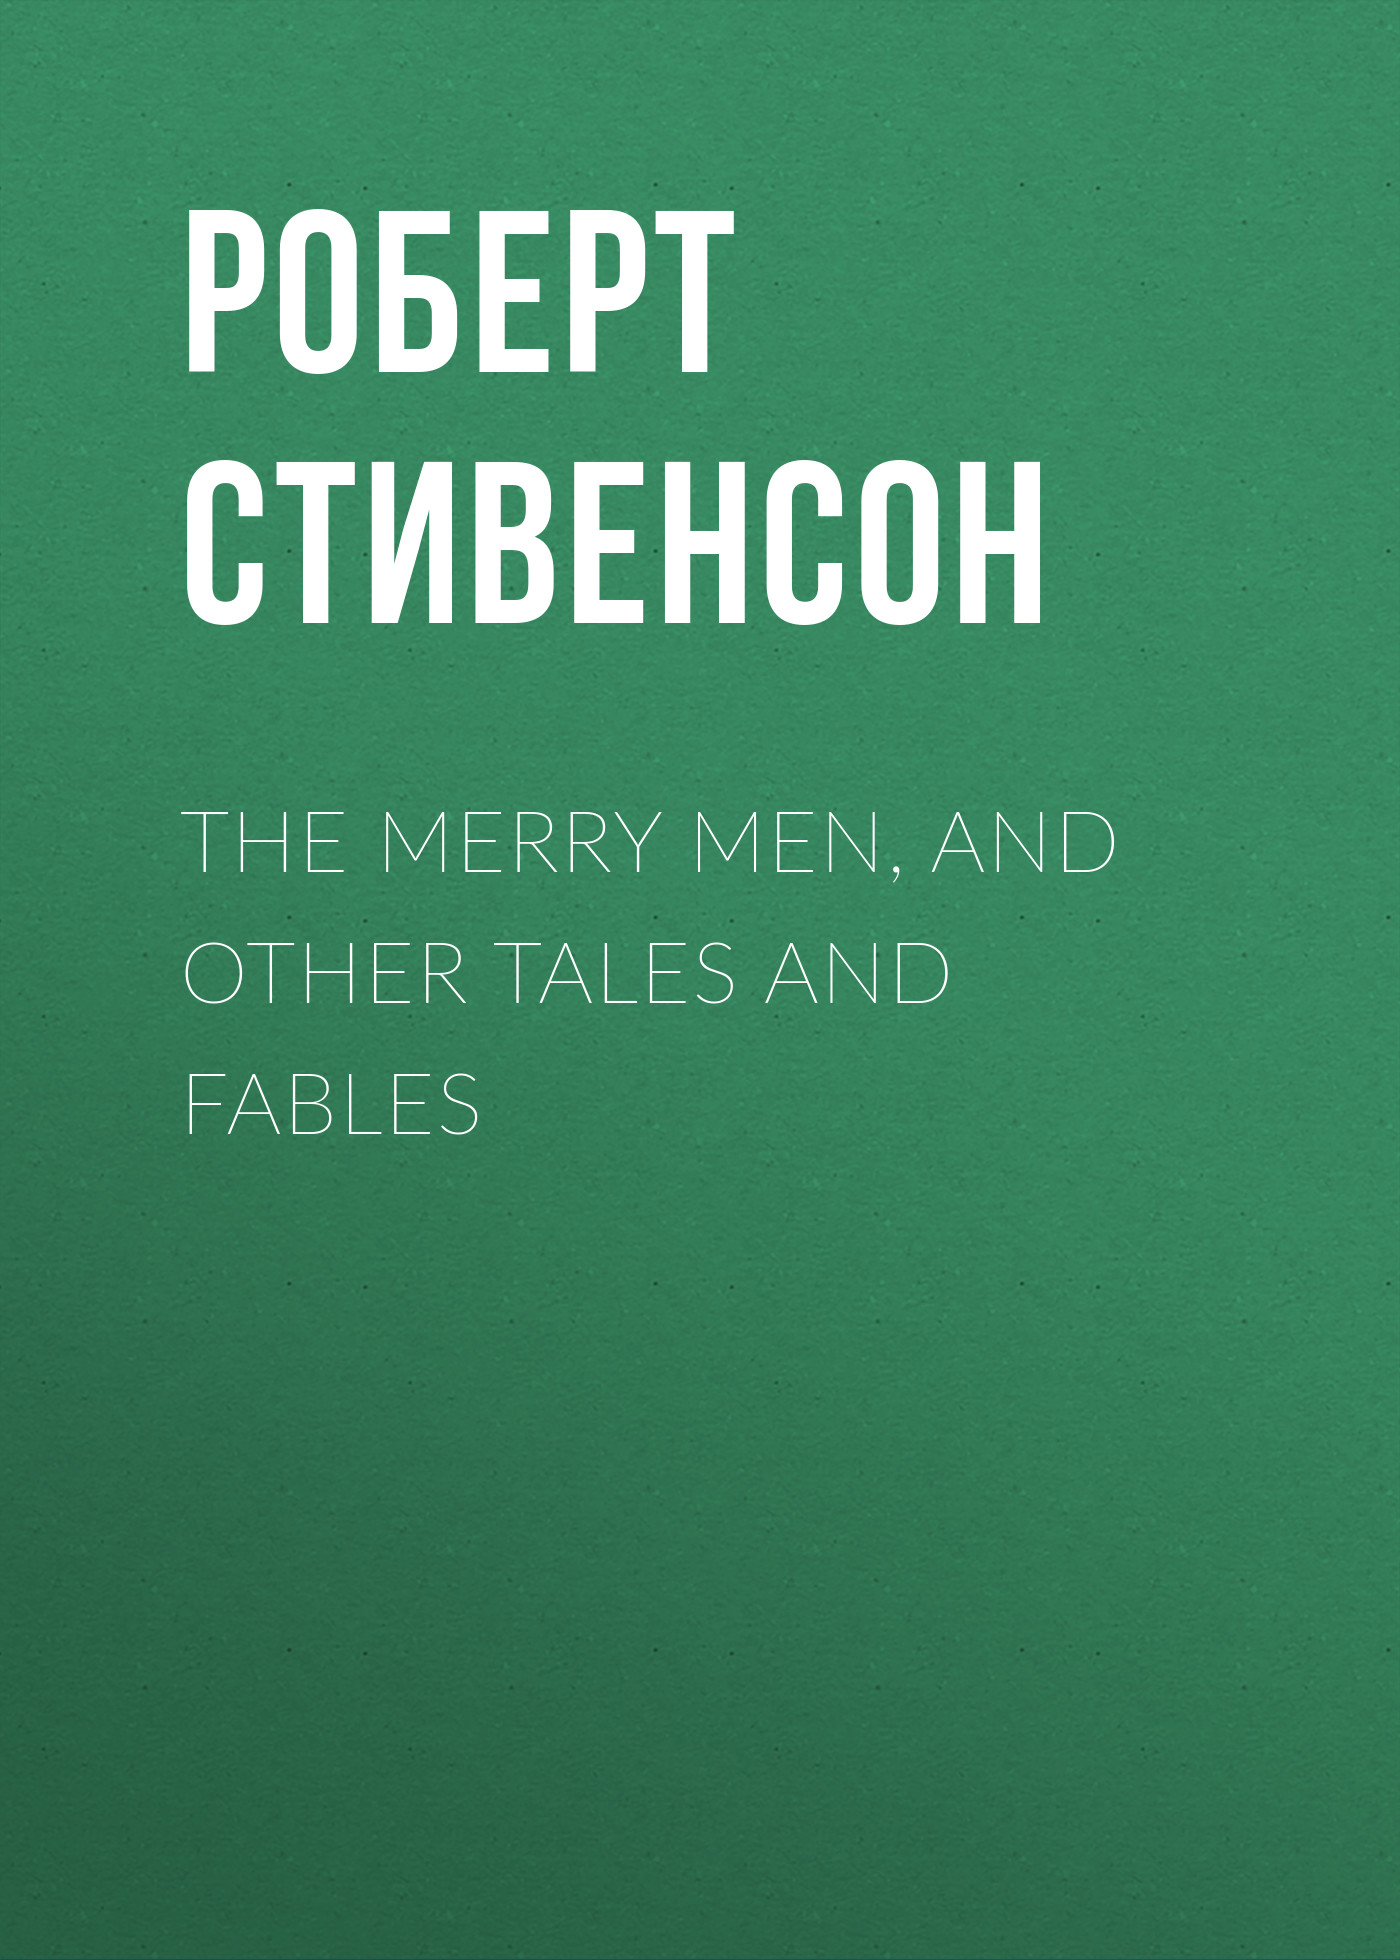 Роберт Льюис Стивенсон The Merry Men, and Other Tales and Fables роберт льюис стивенсон the silverado squatters